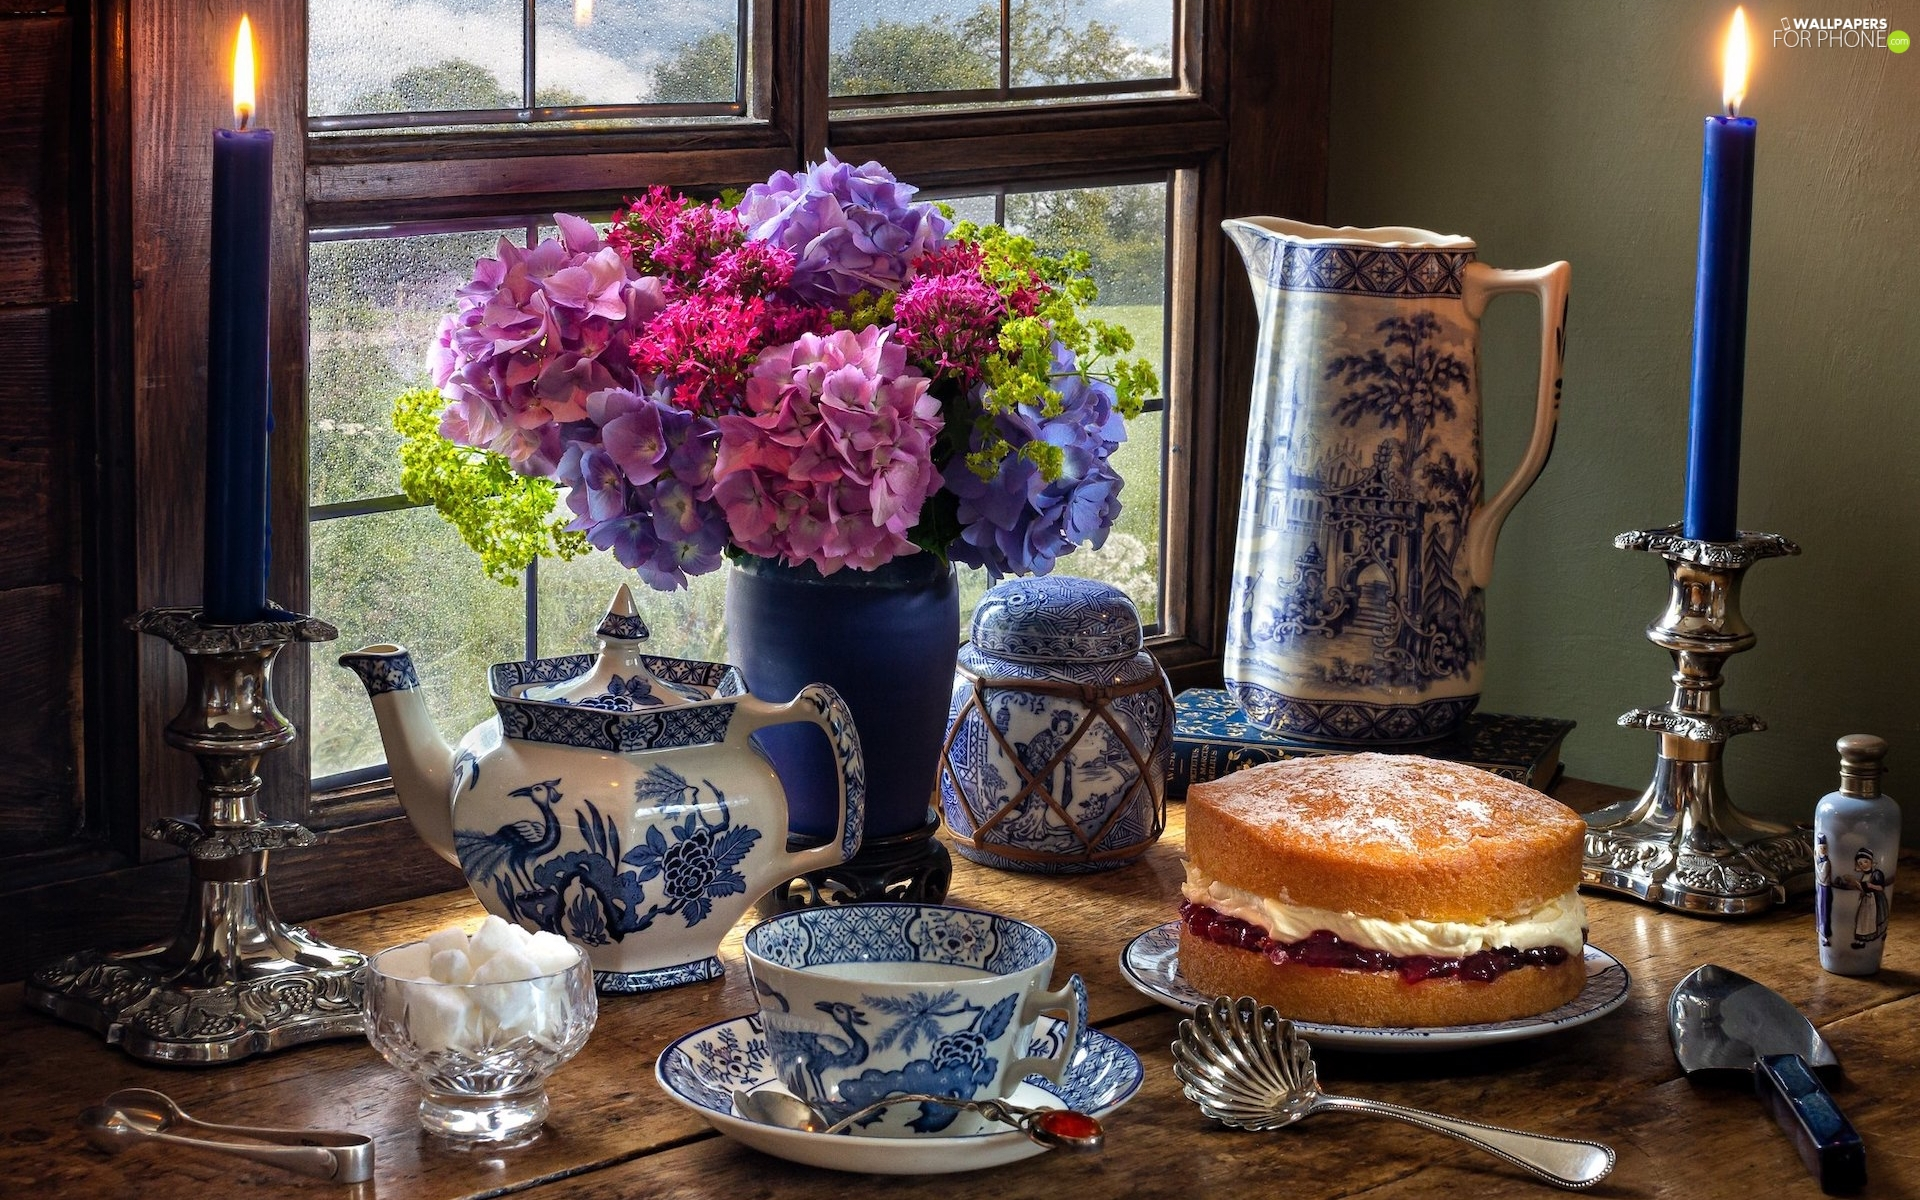 candlesticks, Window, hydrangeas, cake, jug, composition, candle, cup, Candles, sugar